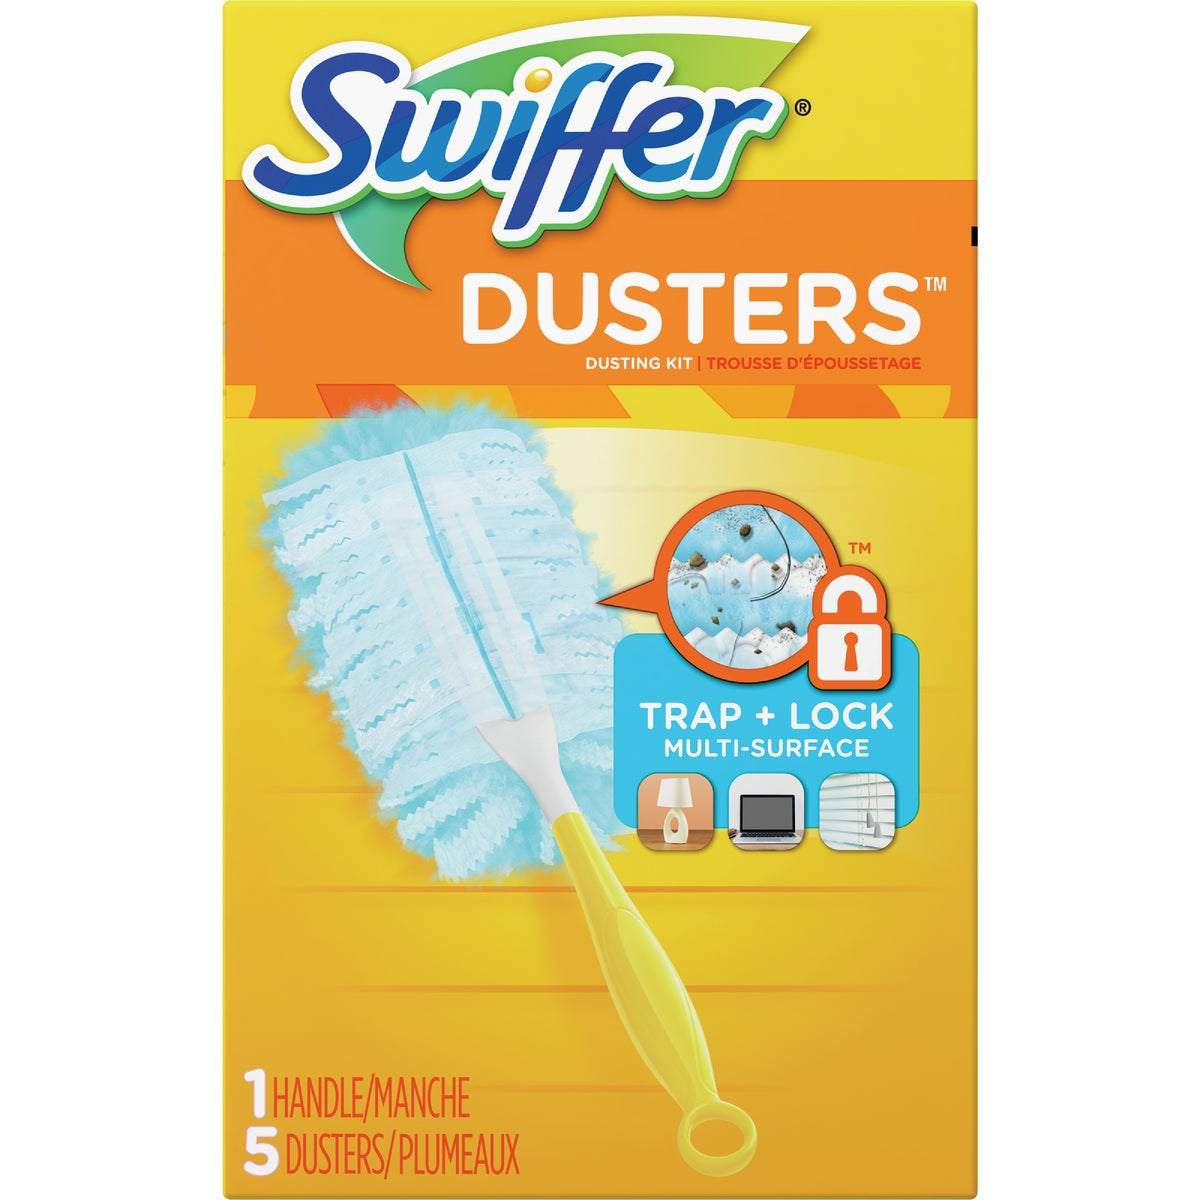 SWIFFER DUSTER - 40509 by Procter & Gamble